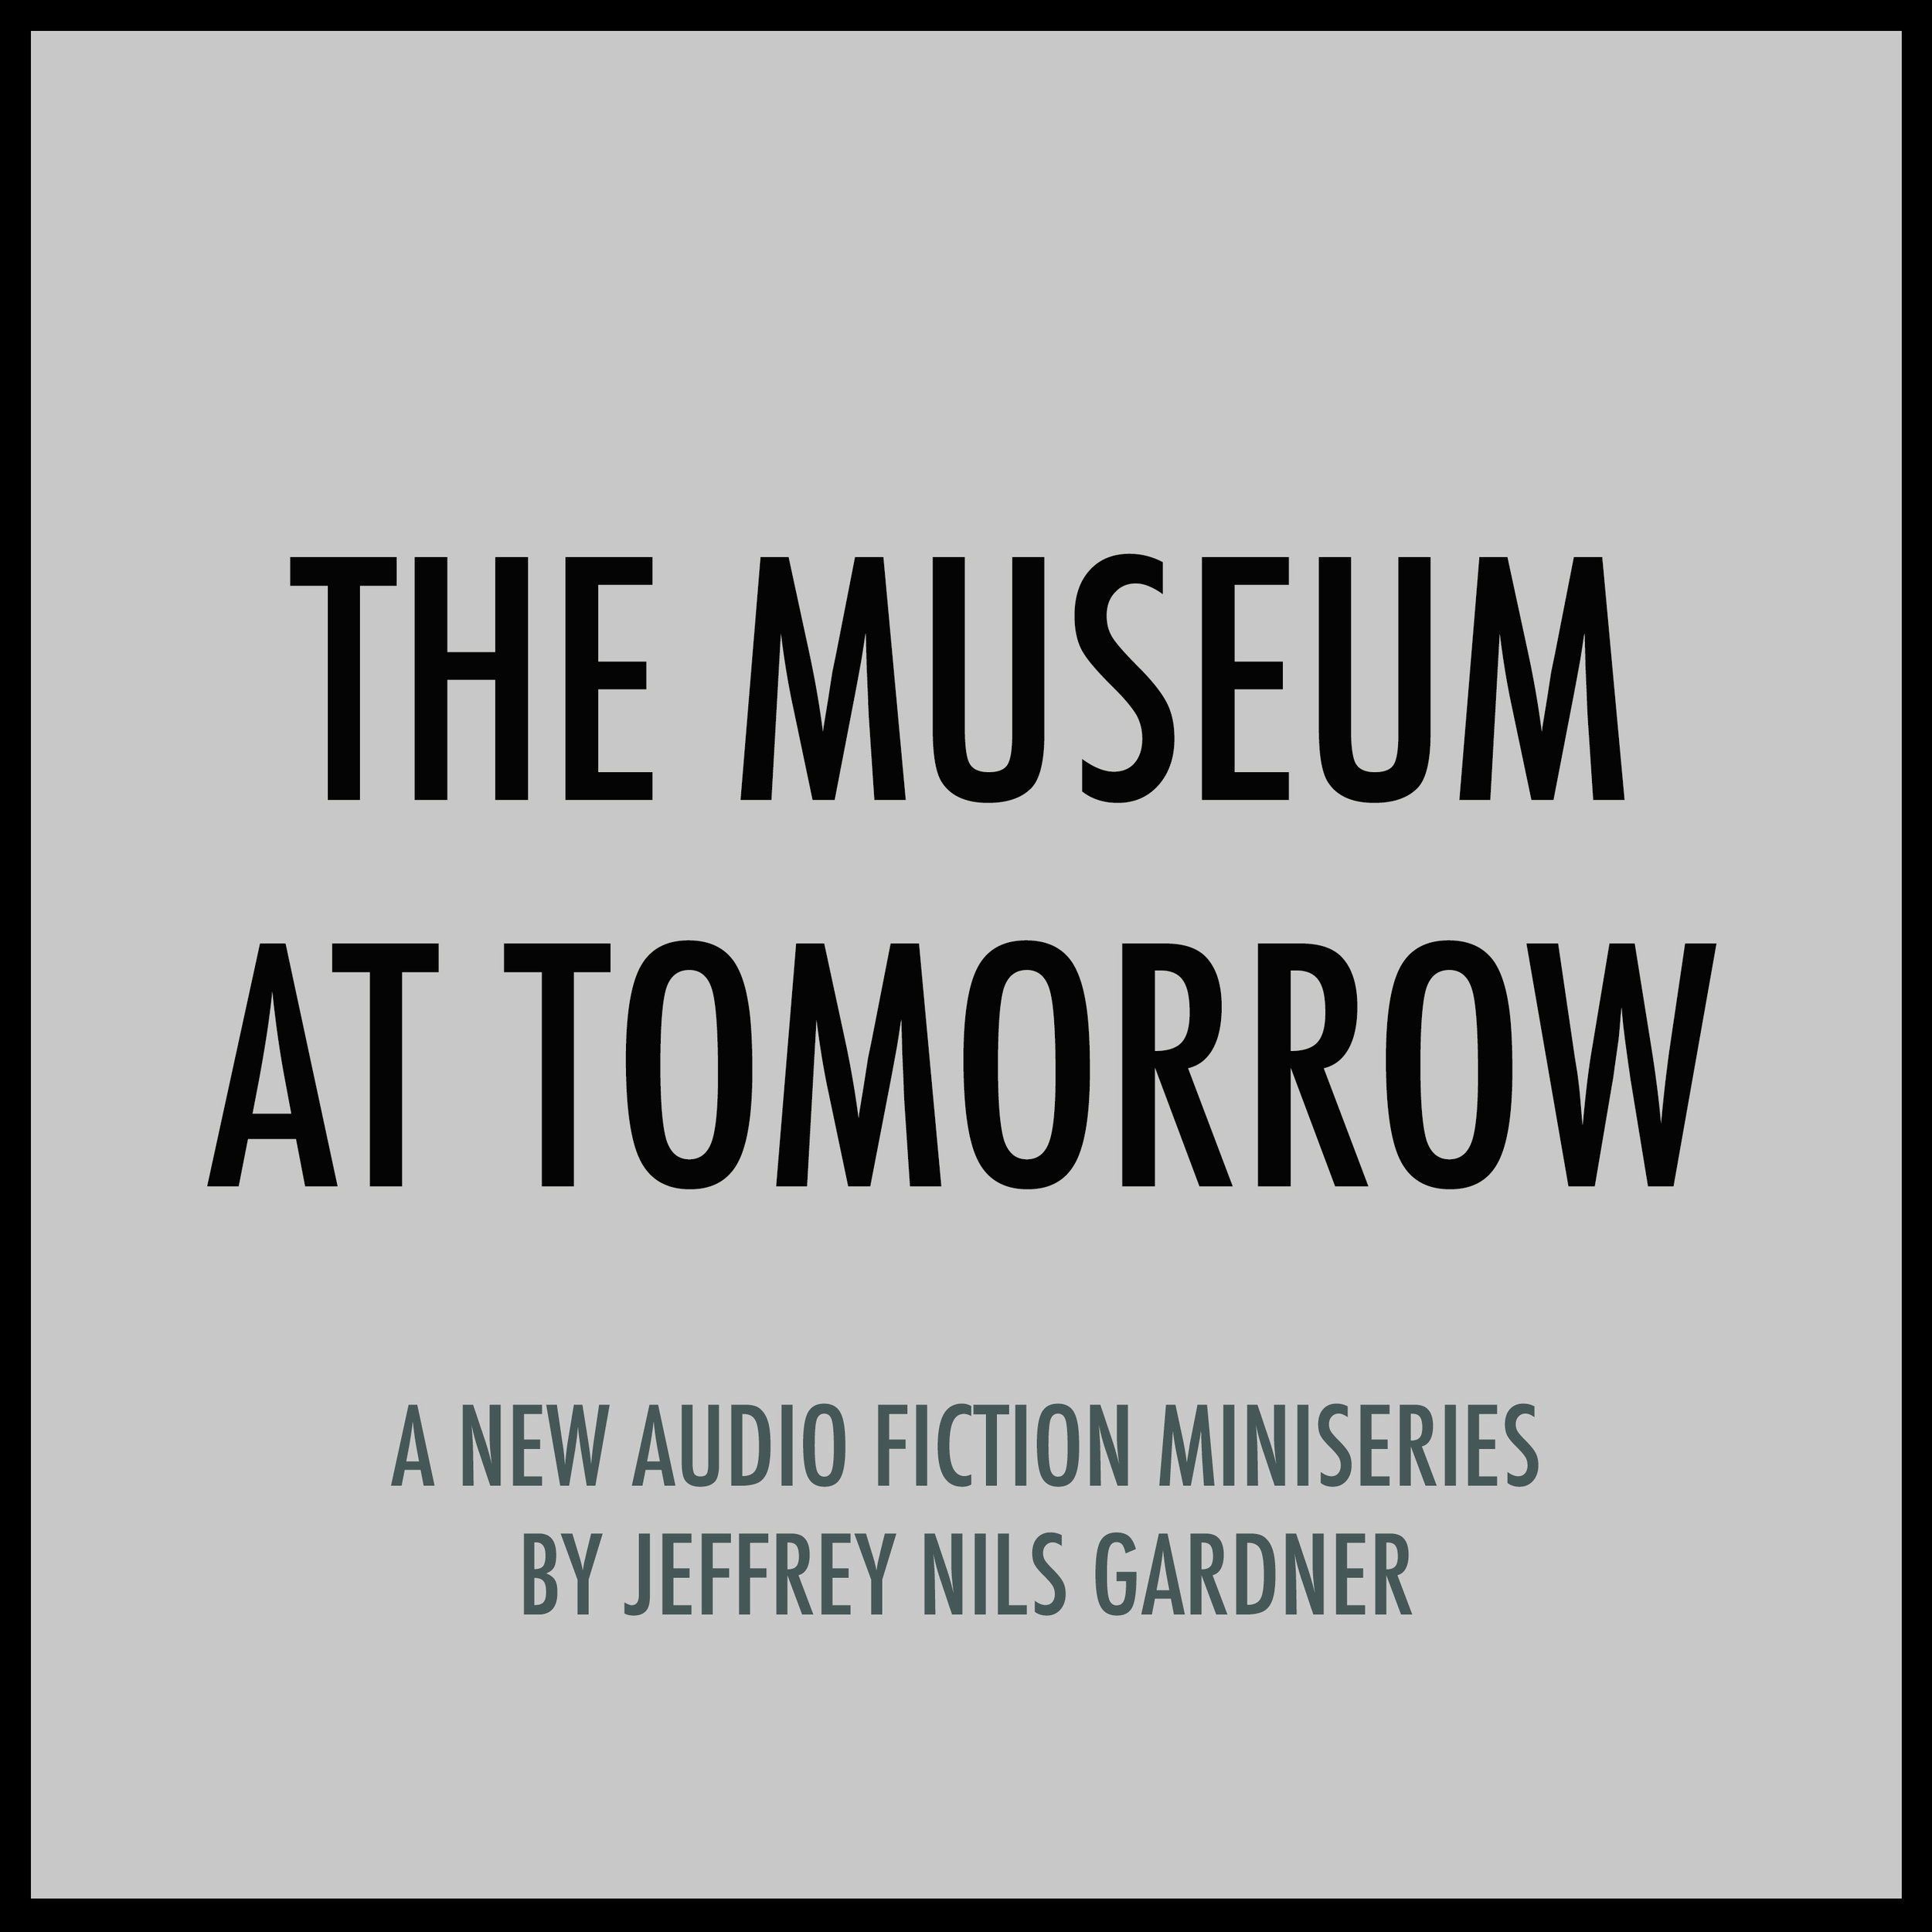 Museum+at+tomorrow+Podcast+Art